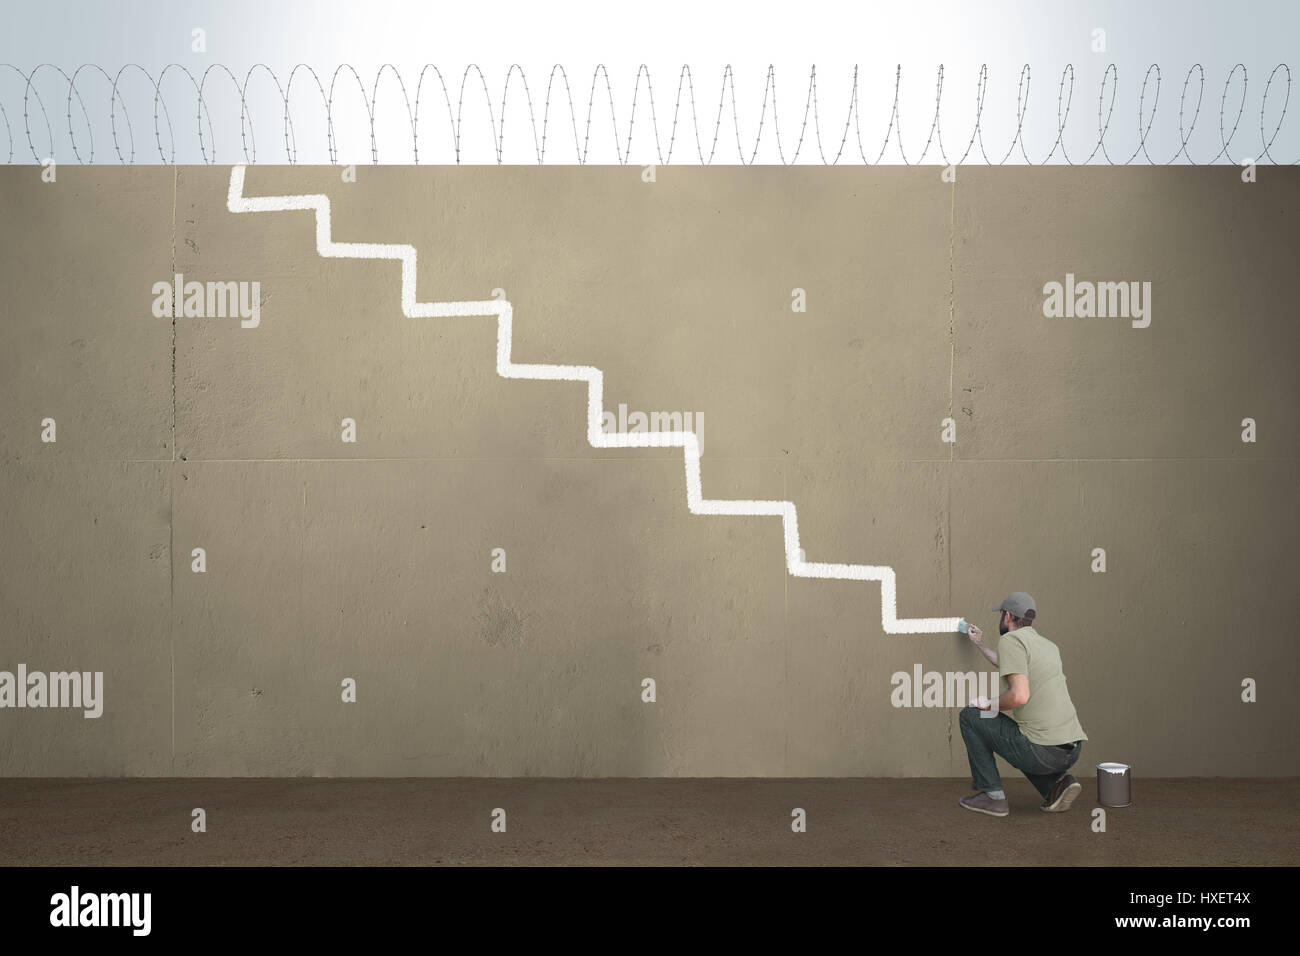 A man draws stairs on a border barrier - Stock Image